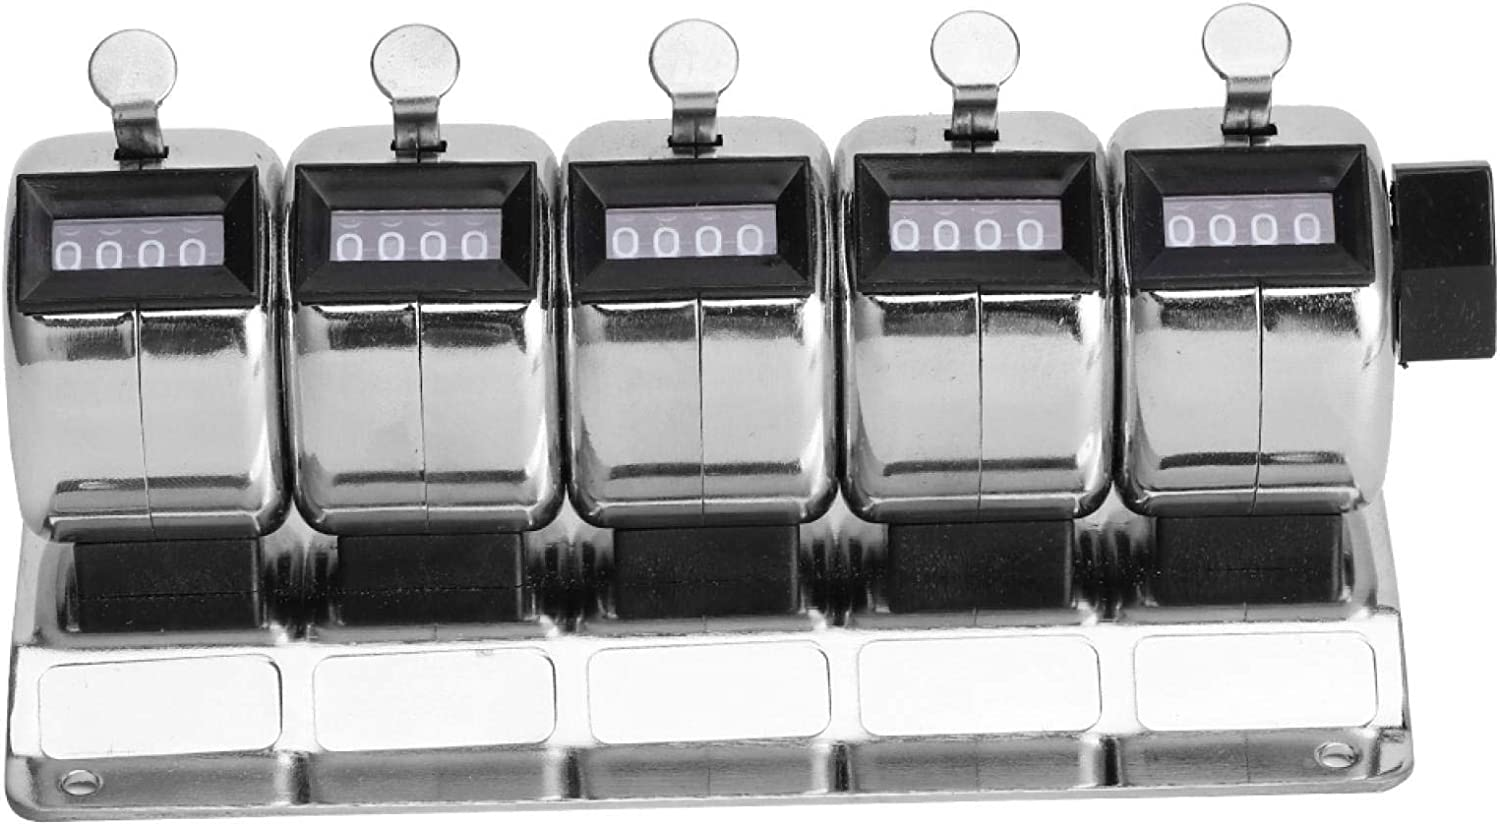 Hand Tally Counters Mechanical Counter Clicker 4âdiscount Metal Manual Sale item